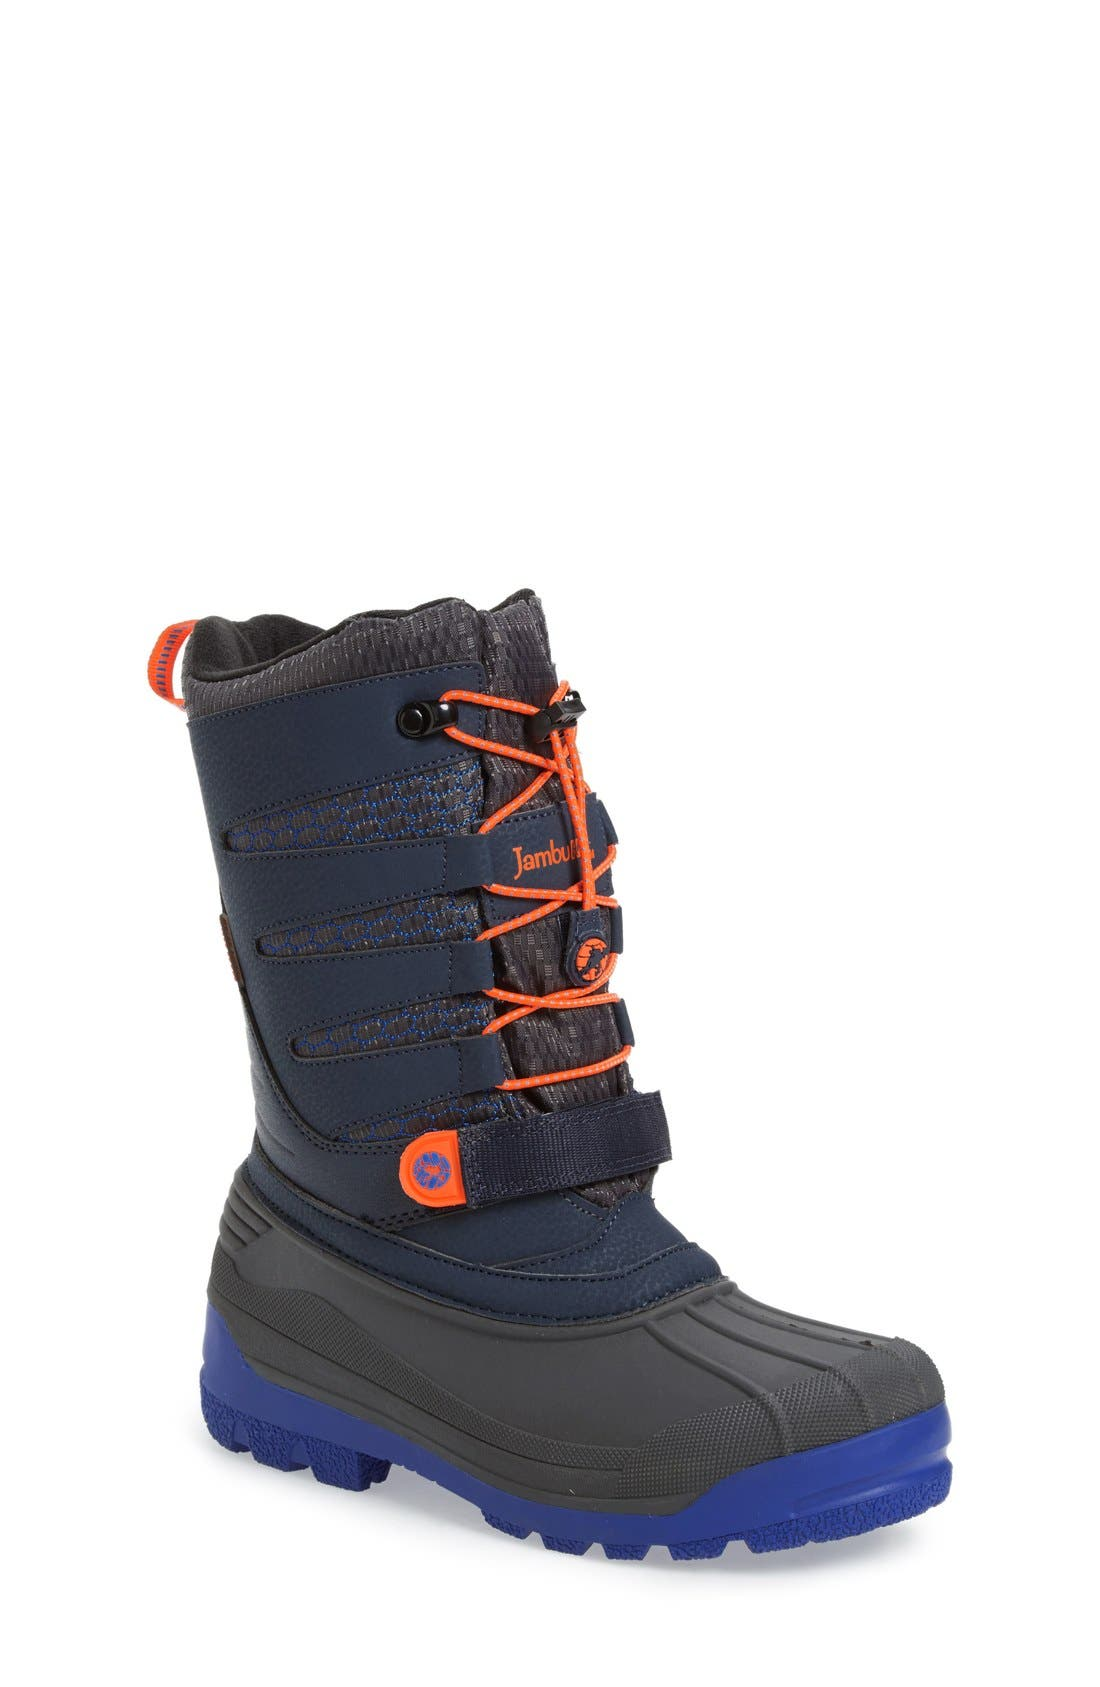 'Venom' Waterproof Insulated Snow Boot,                         Main,                         color, 467